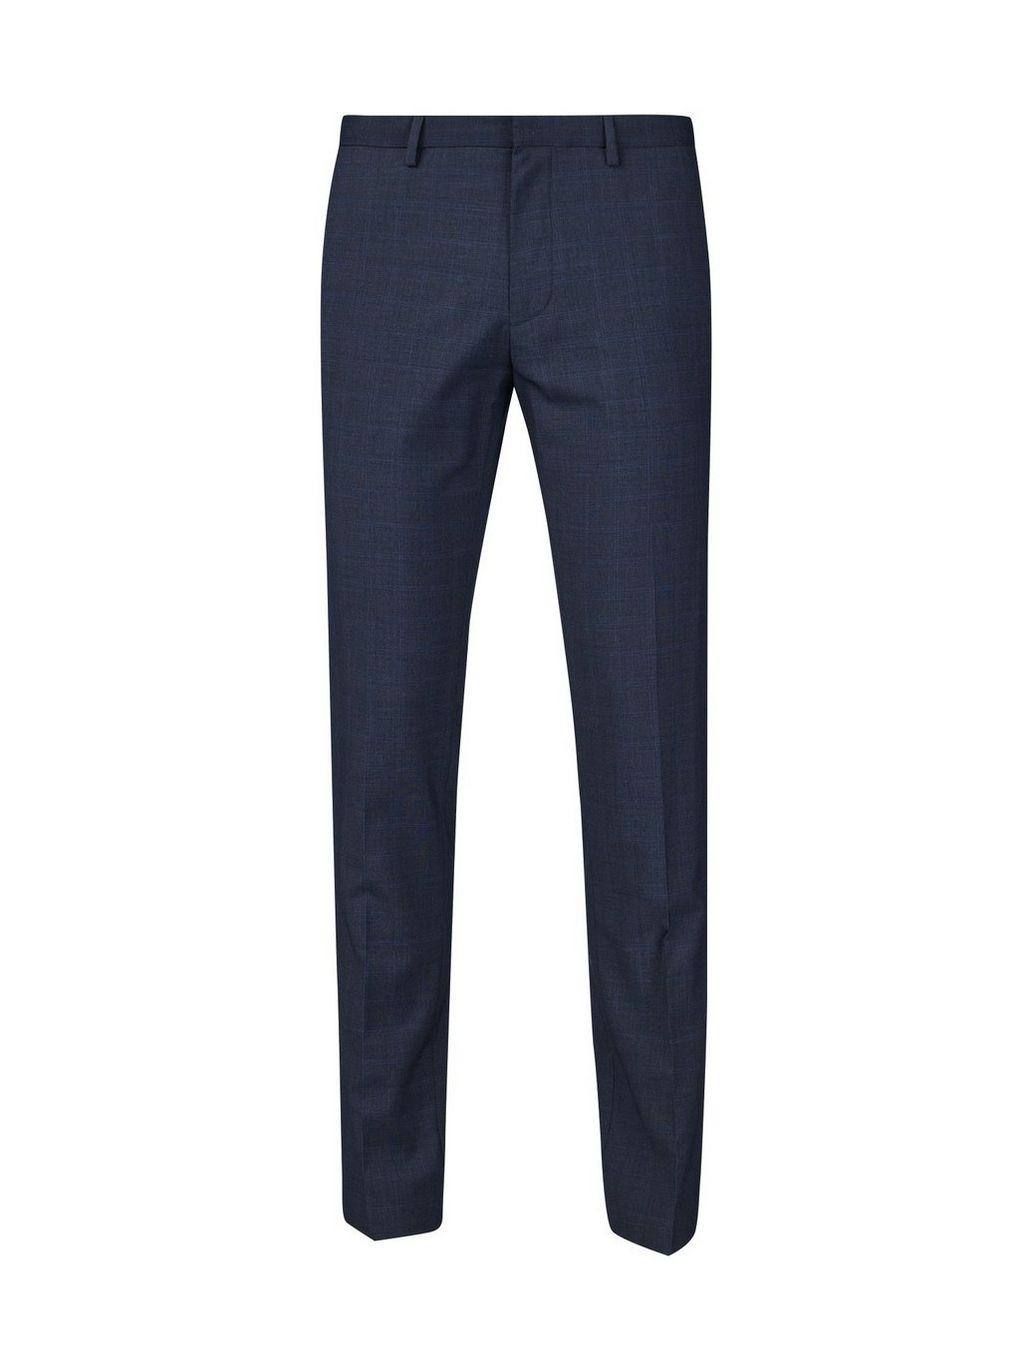 Burton Synthetic Navy Skinny Fit Check Smart Trousers in Blue for Men